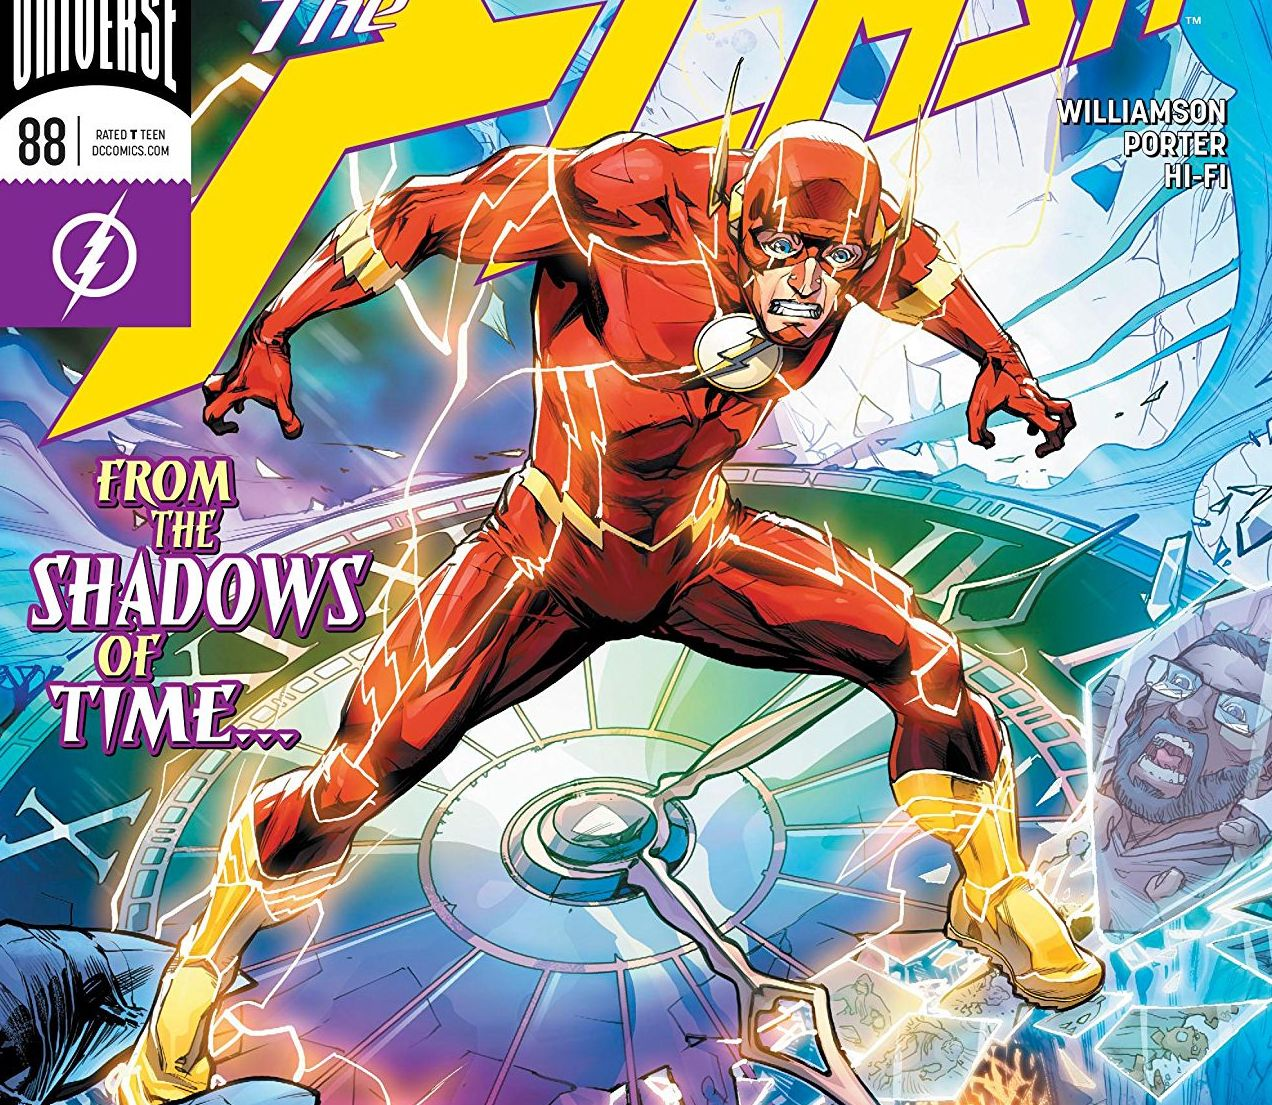 The Flash #88 Review